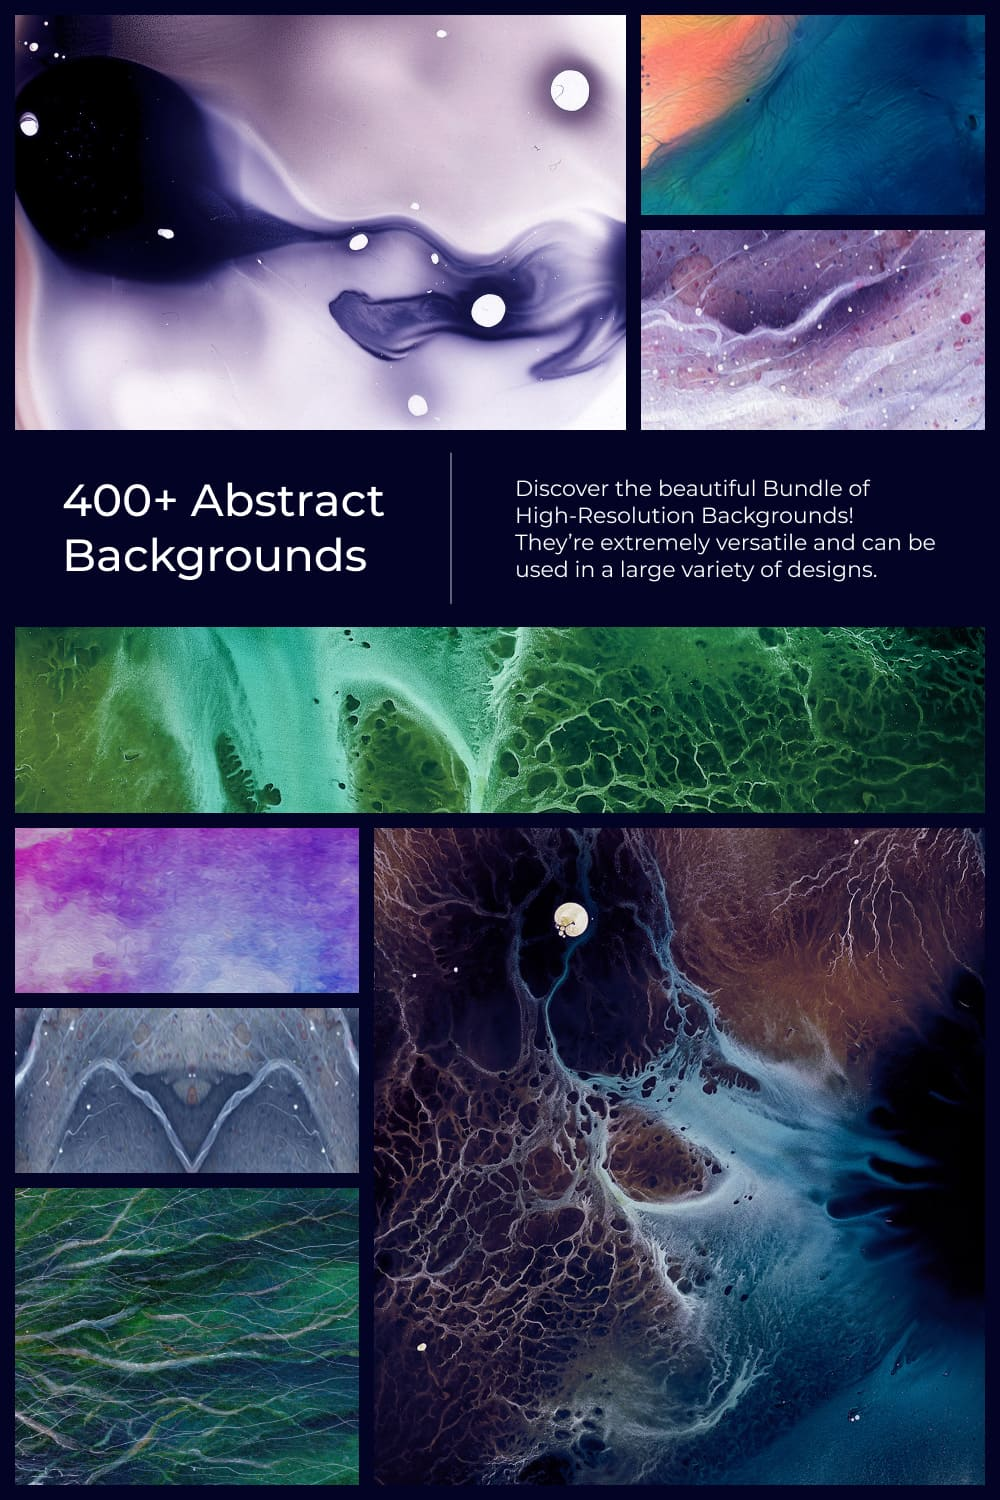 Abstract Backgrounds Pinterest.